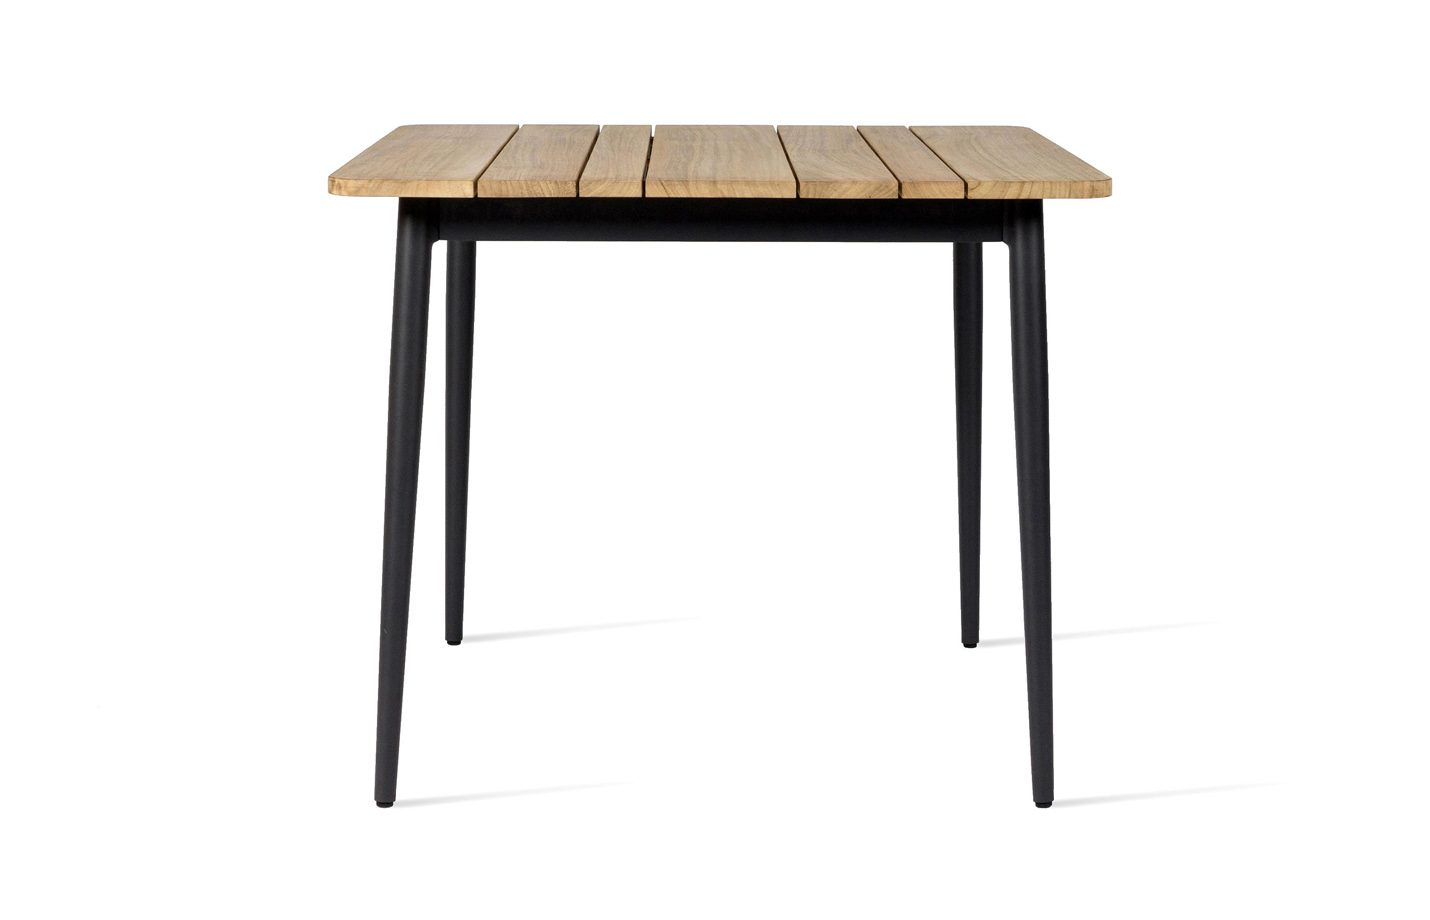 Max-dining-table-length90-01